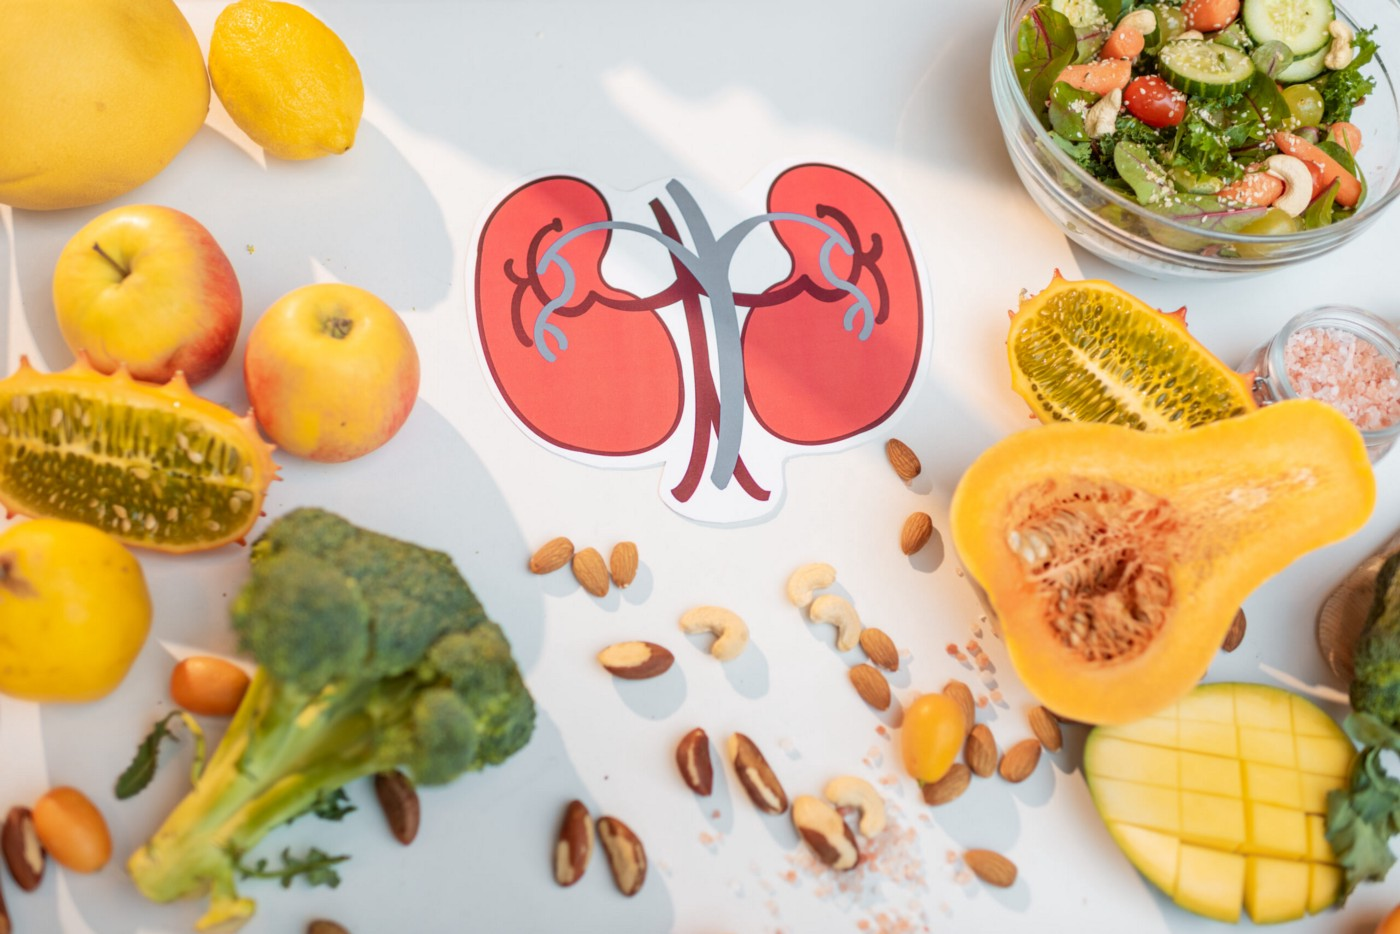 All You Need To Know About The Kidney Month